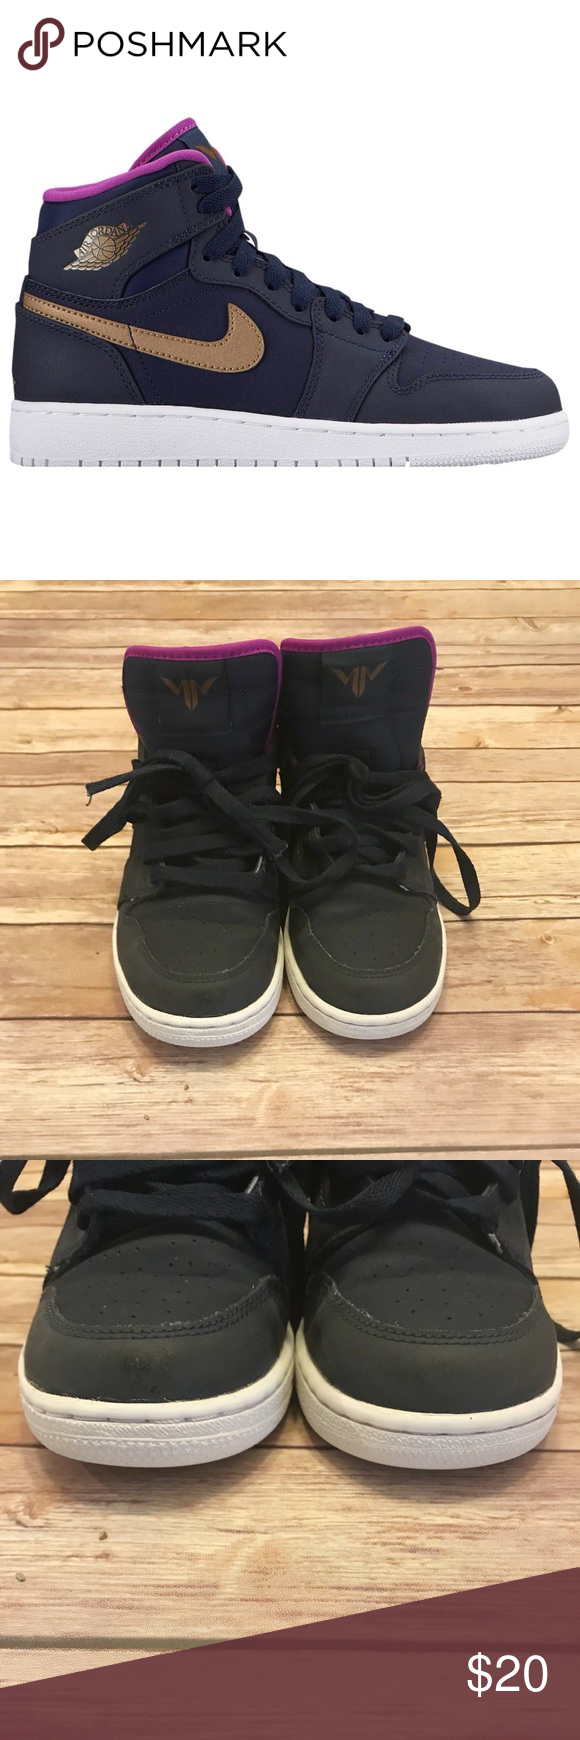 """8512b955137a71 Girls Air Jordan """"Maya Moore"""" Shoes Pre-owned Girls Maya Moore shoes. Minor  dirt on bottom of shoes. Shoe laces have frayed ends. Girls size 4 Jordan  Shoes"""